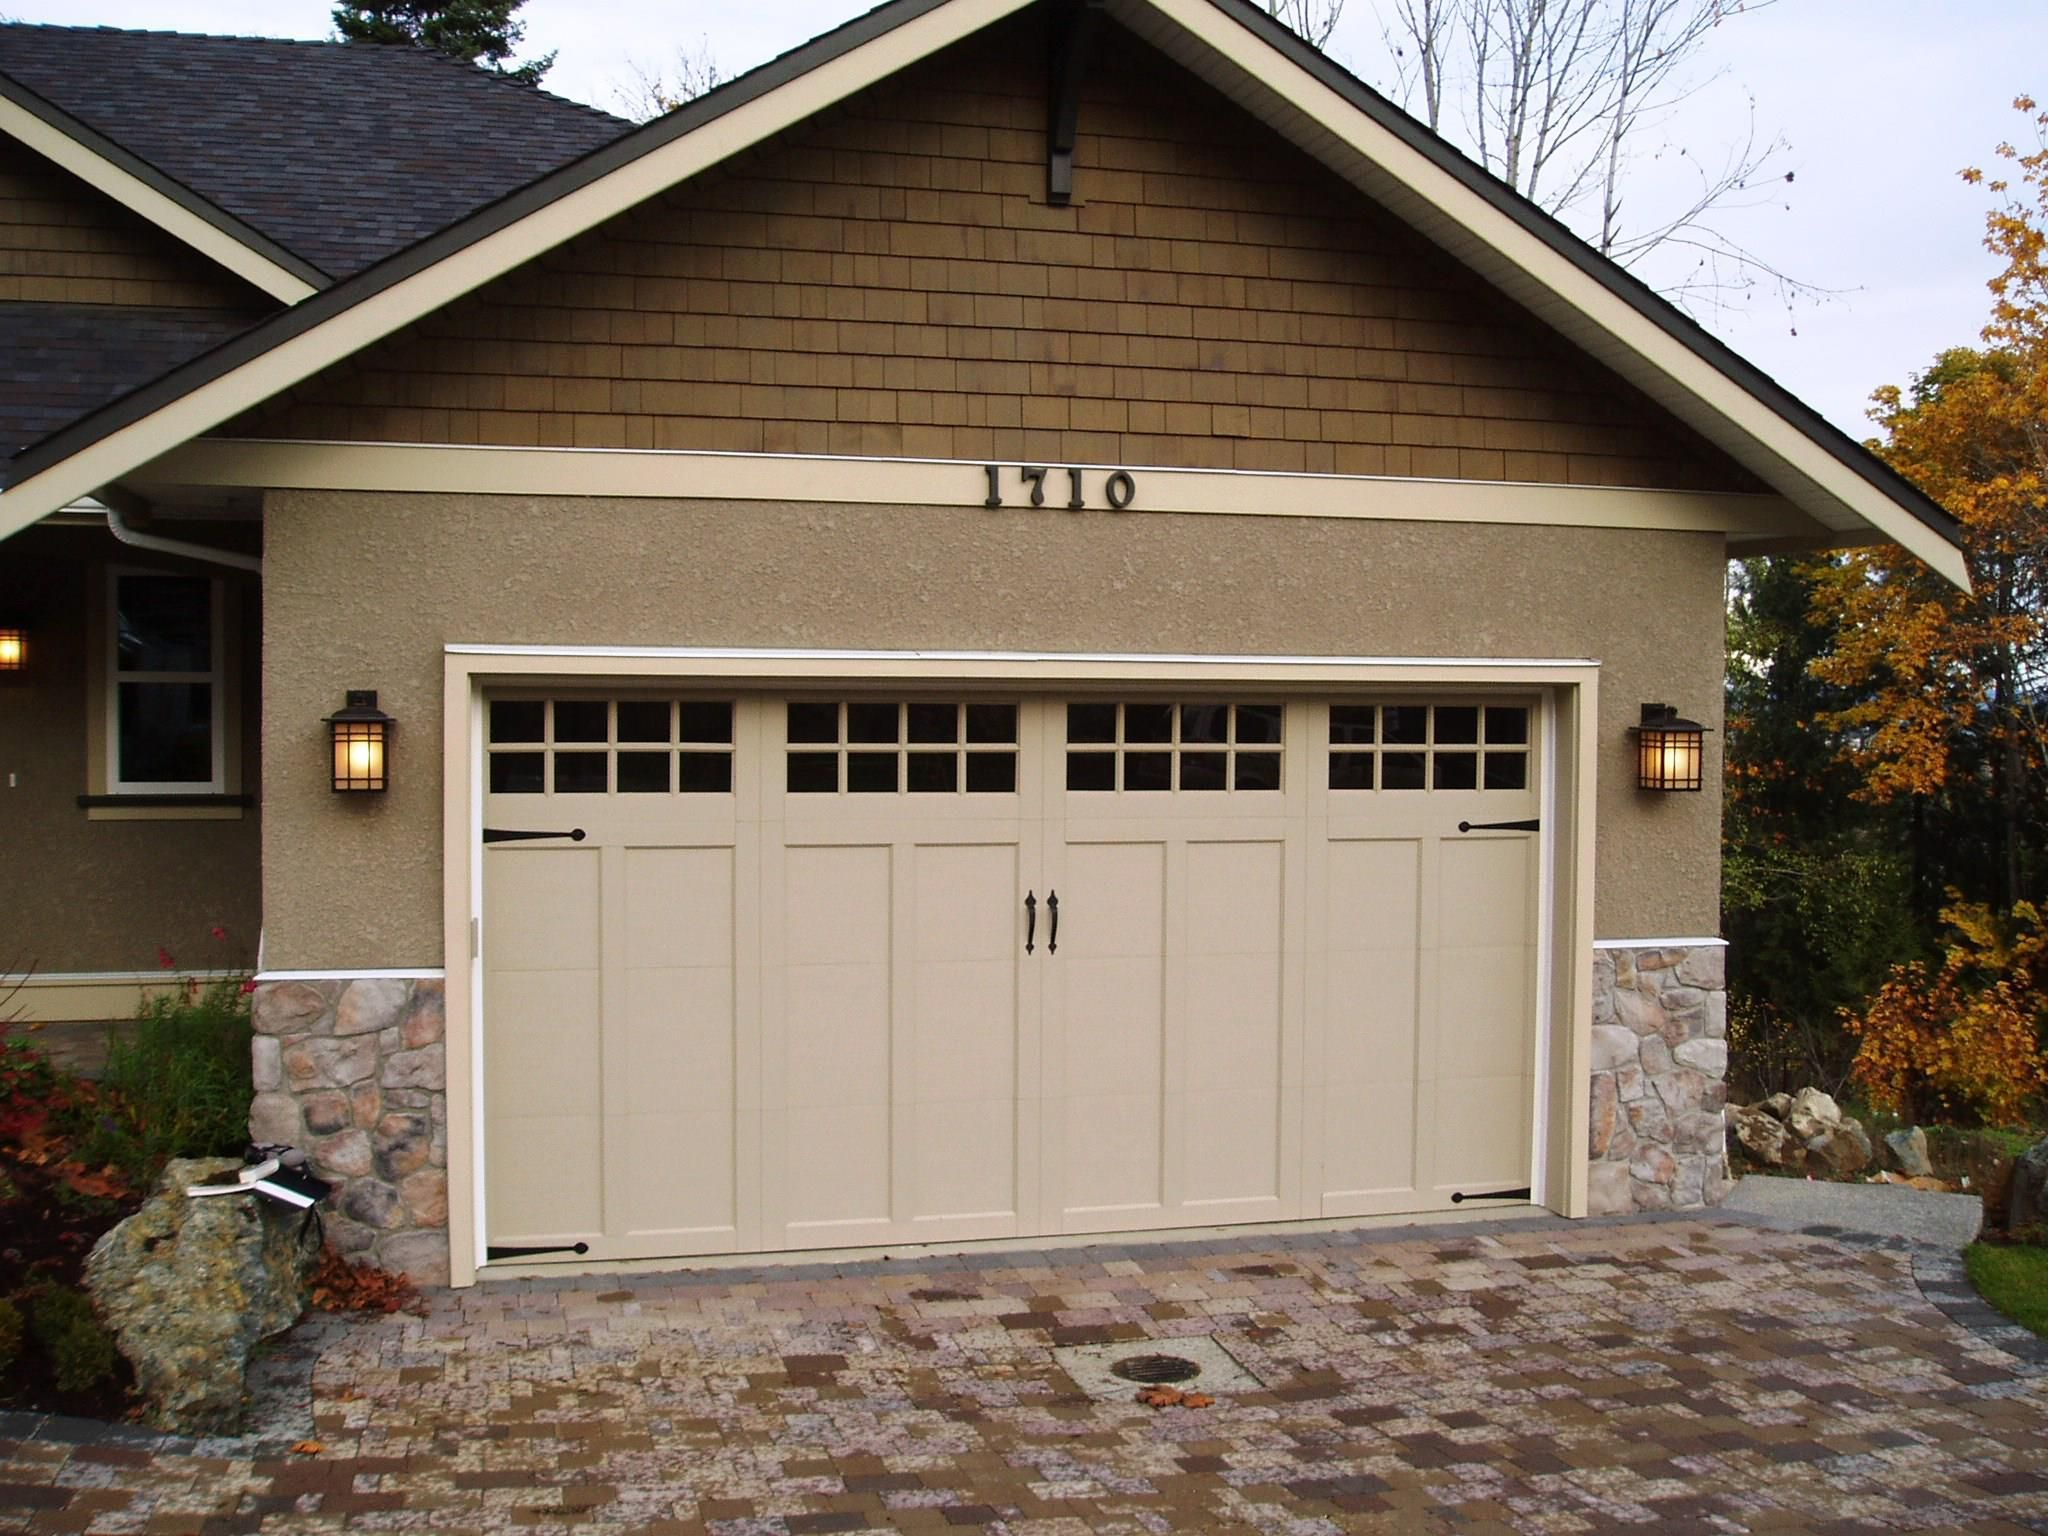 Pinterrific garage door makeover inspiration click on the image link to see the top 10 garage for Exterior garage doors